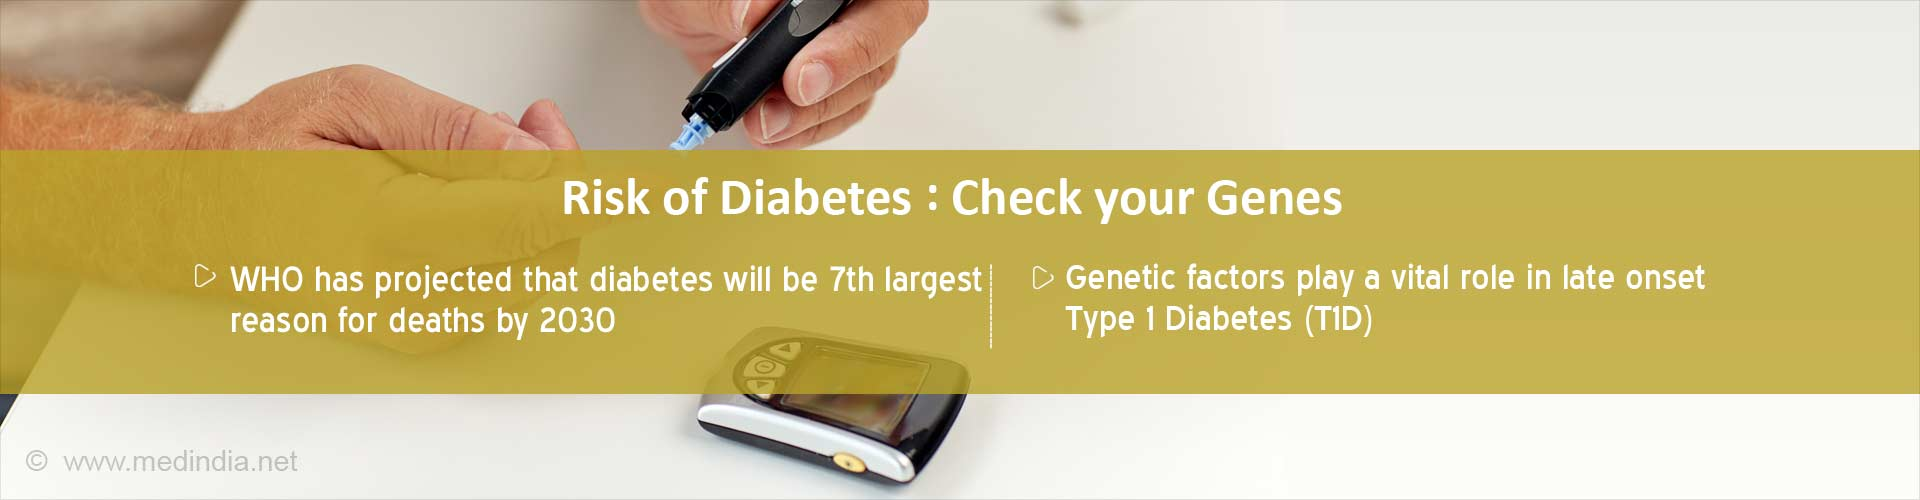 Genetic Factors Found to Play Vital Role in Late Onset Type 1 Diabetes